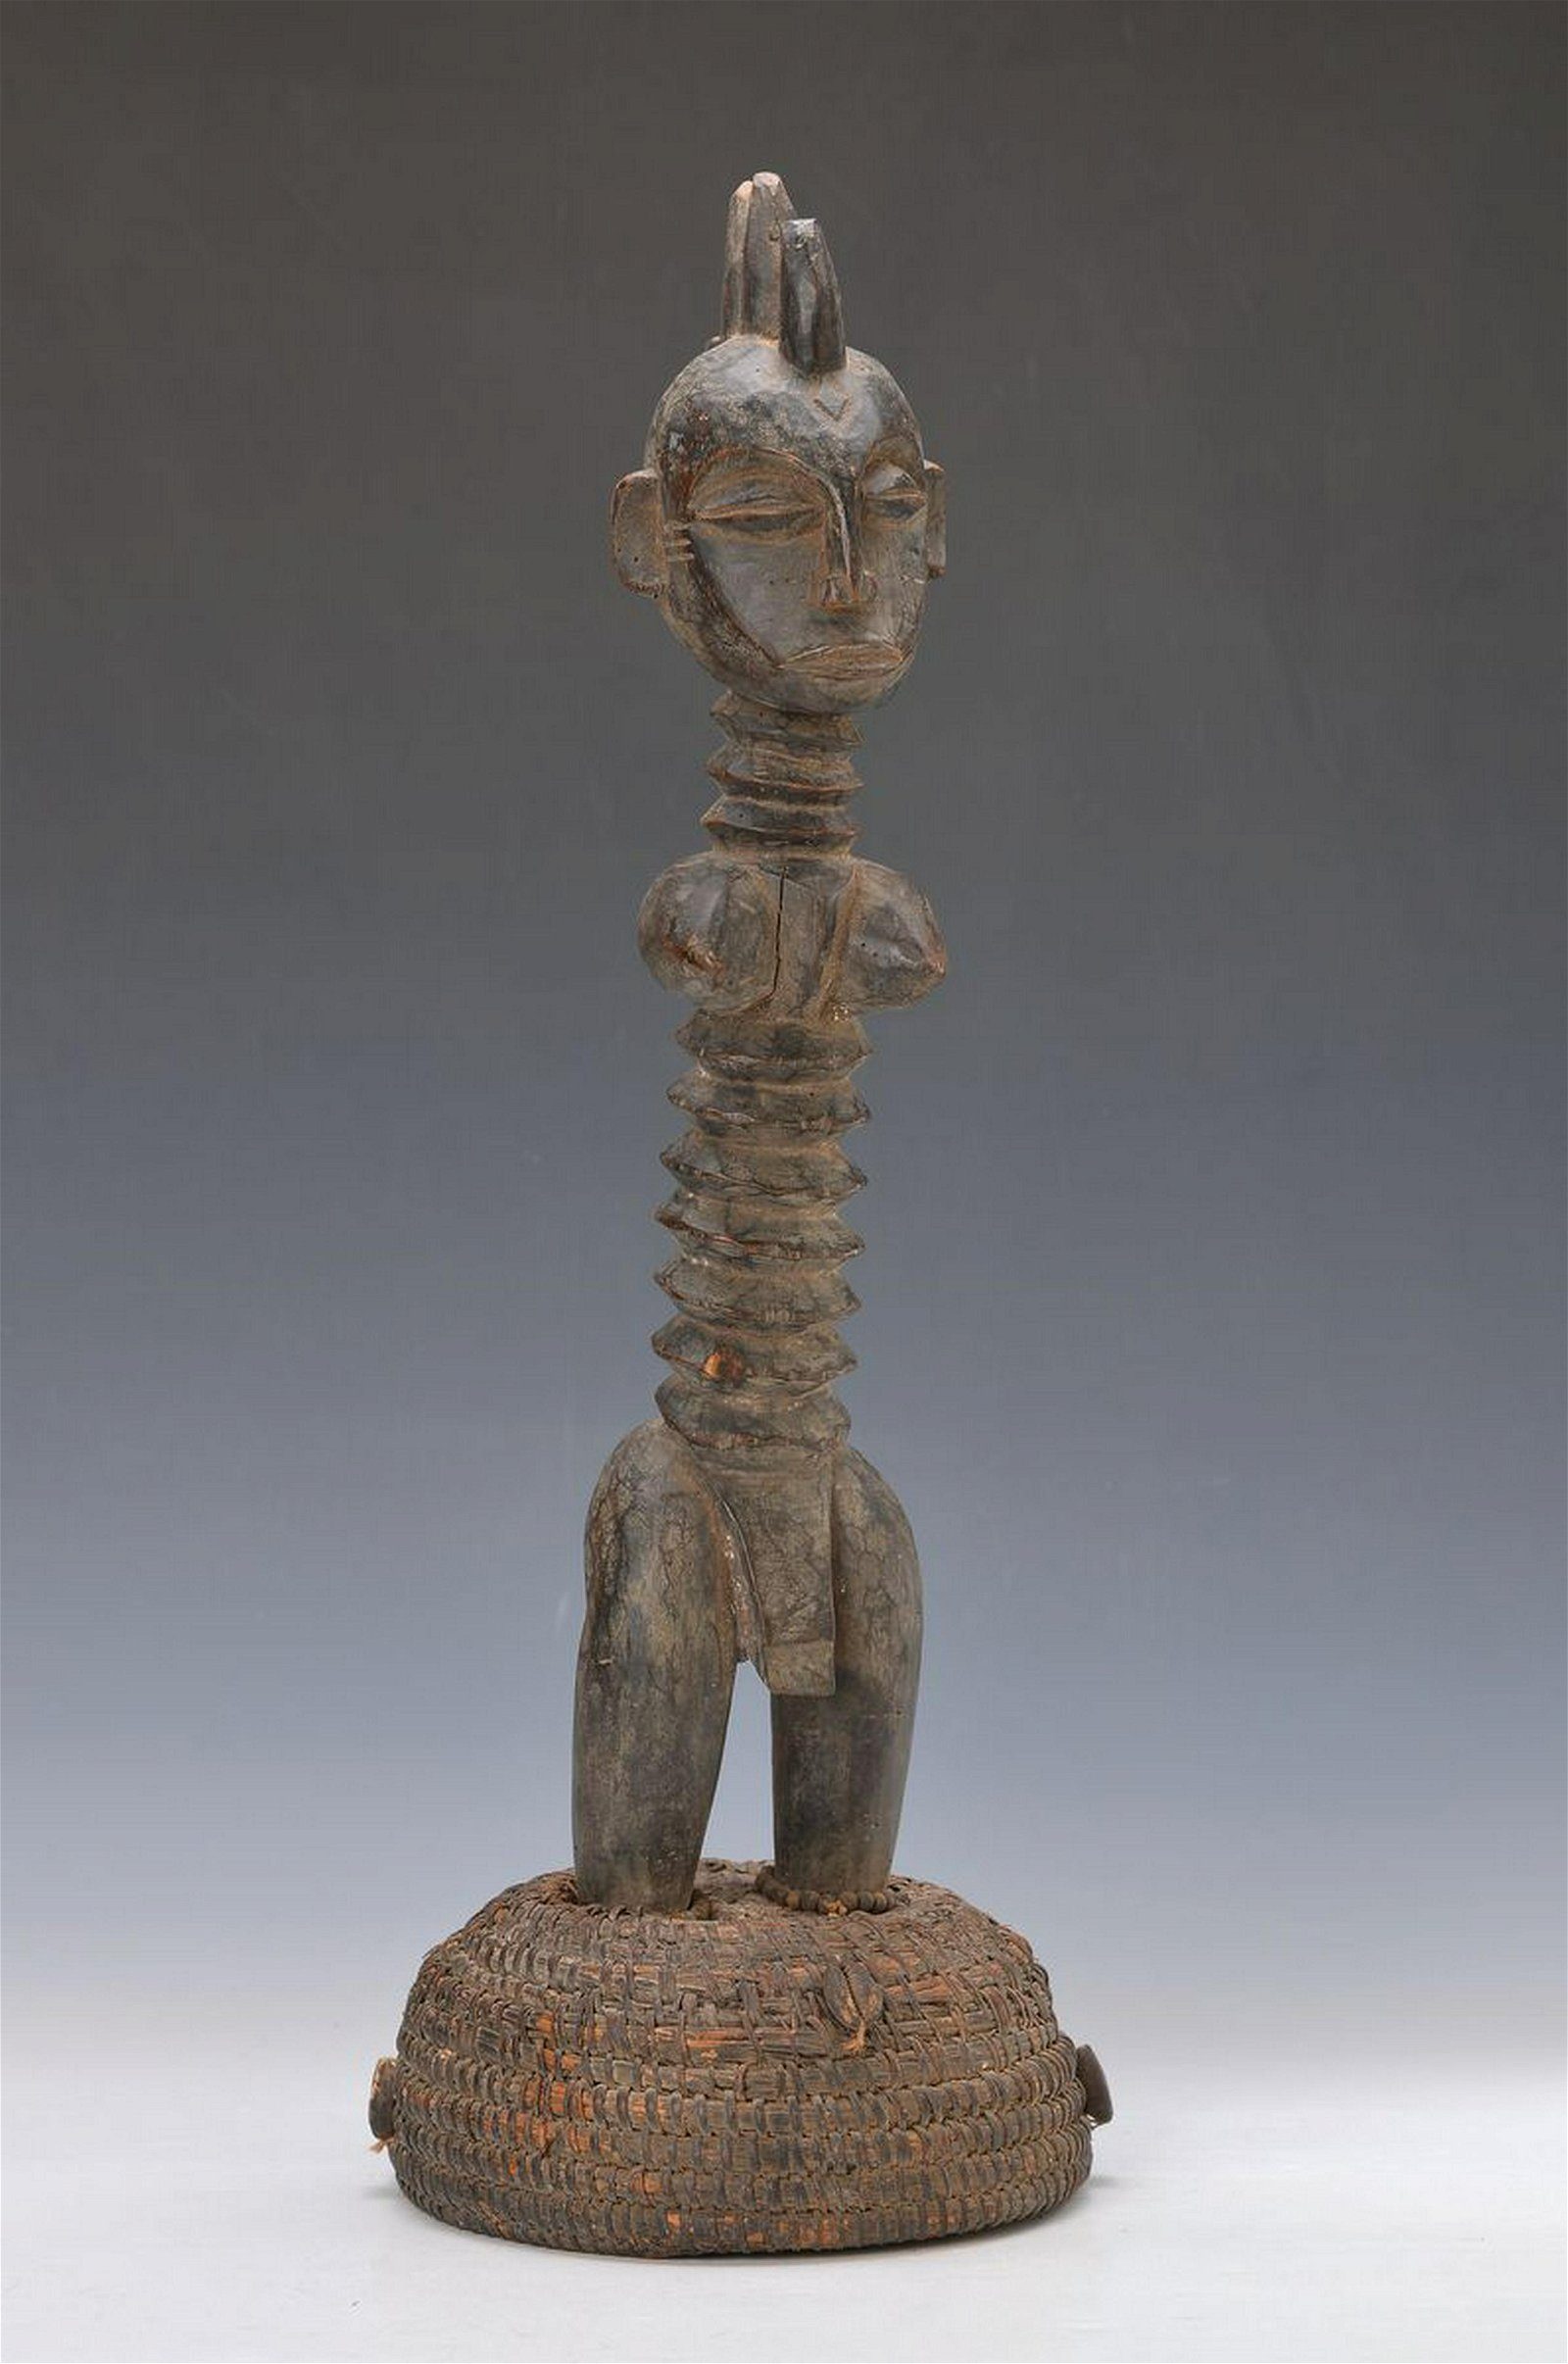 fertility figure, Senufo, approx. 60 years, wood, foot